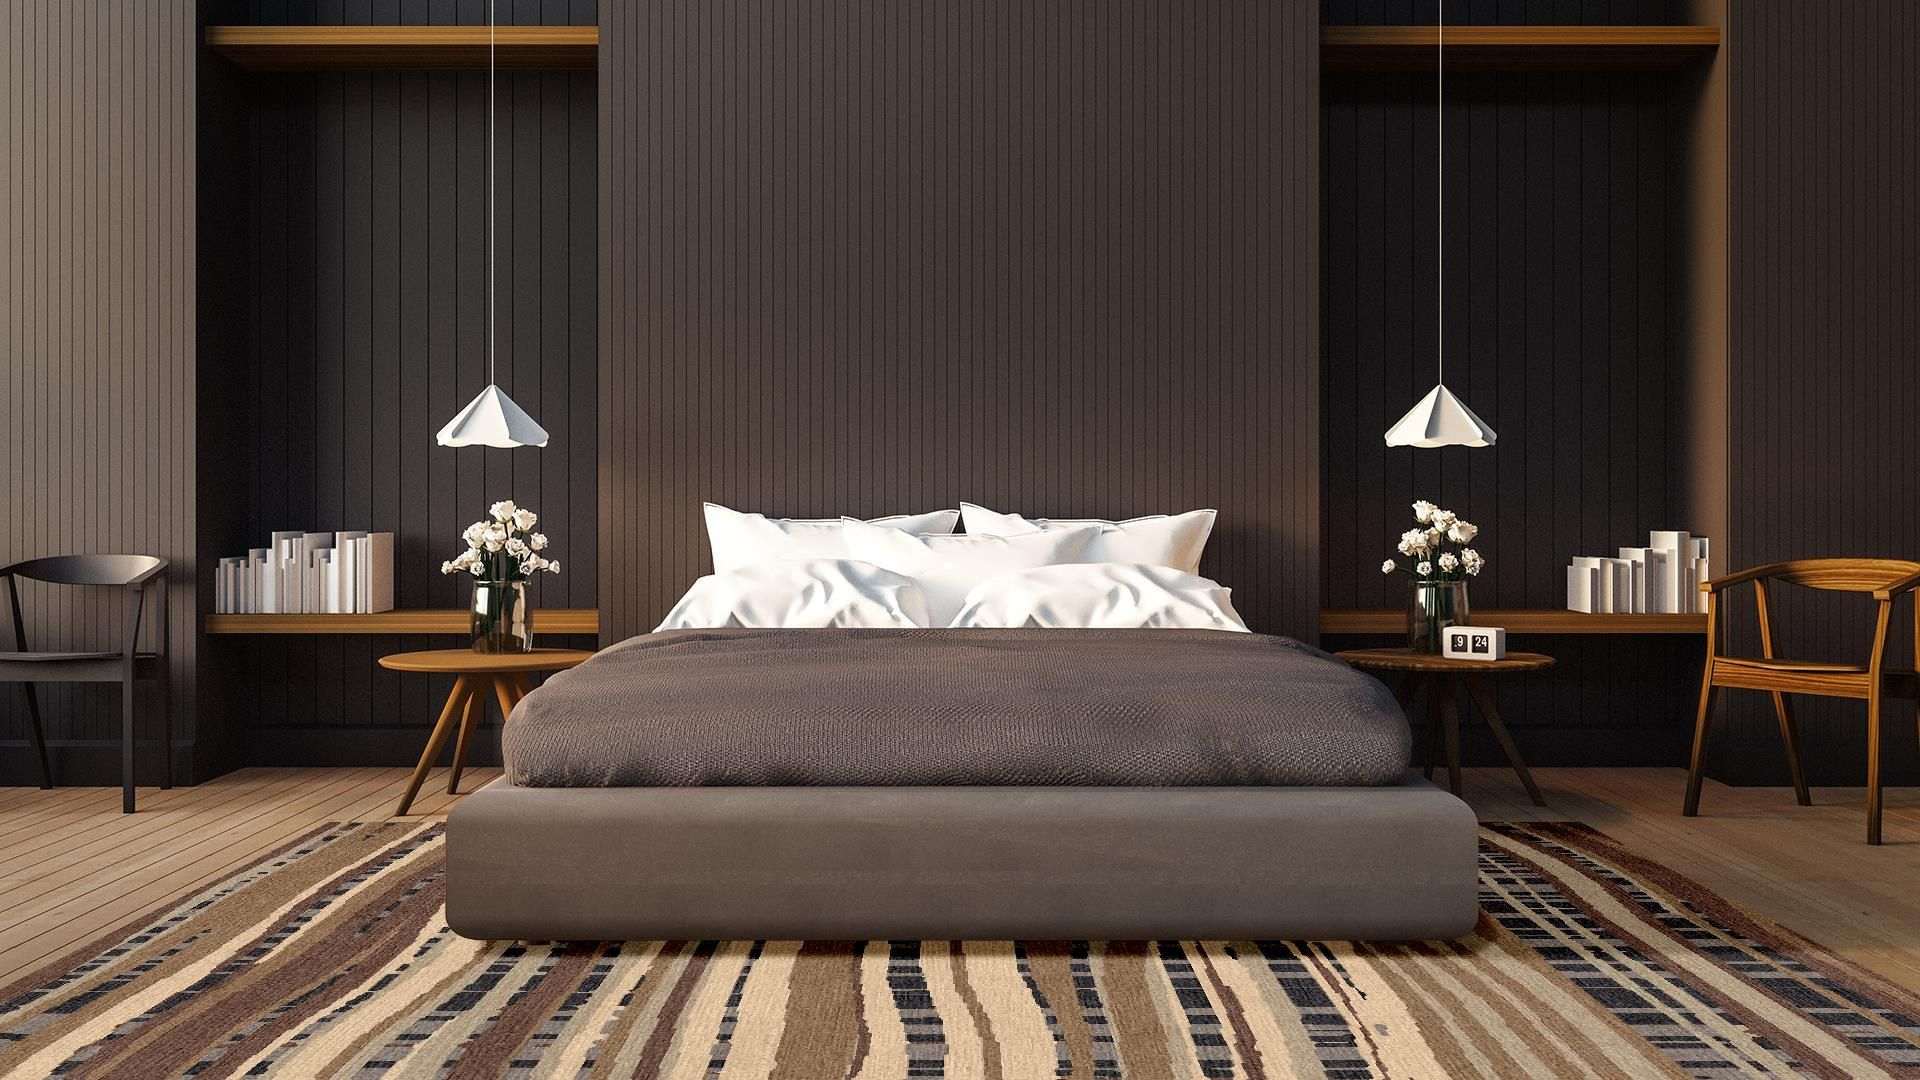 The Ageition rug in a bedroom scene. customrugs,